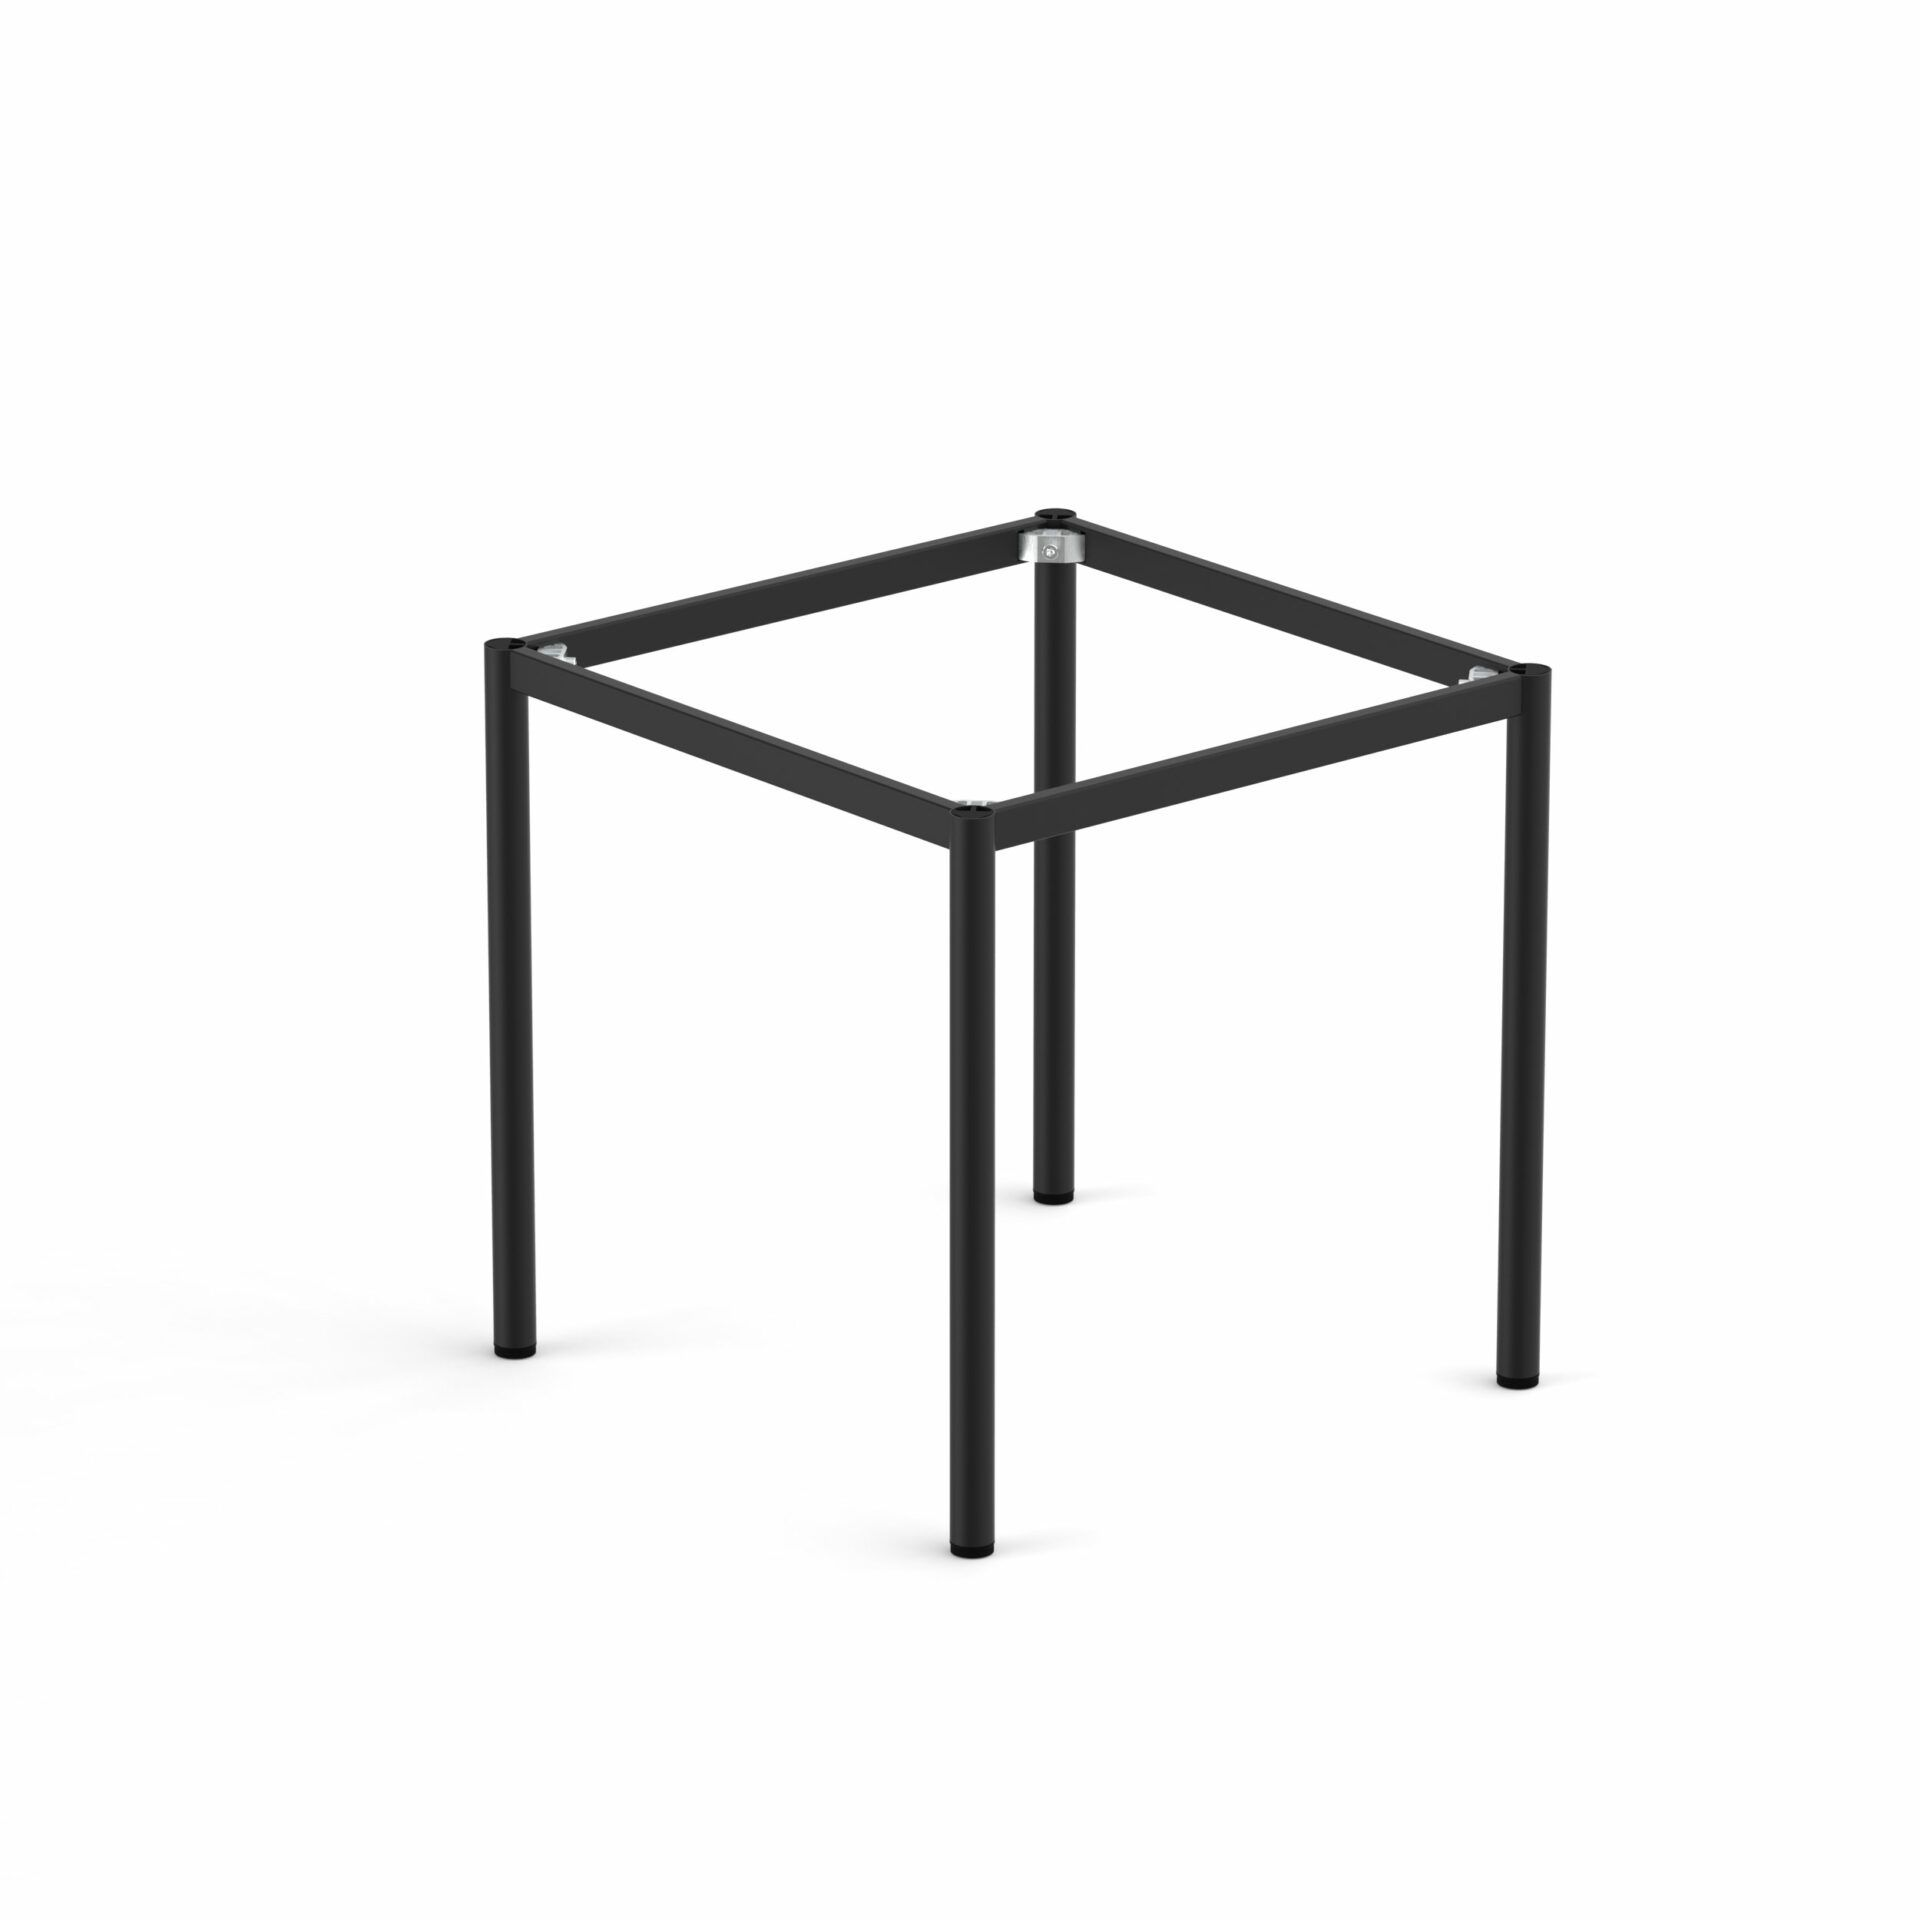 Spire Round leg Table Height Frame 990 x 690 x 720H